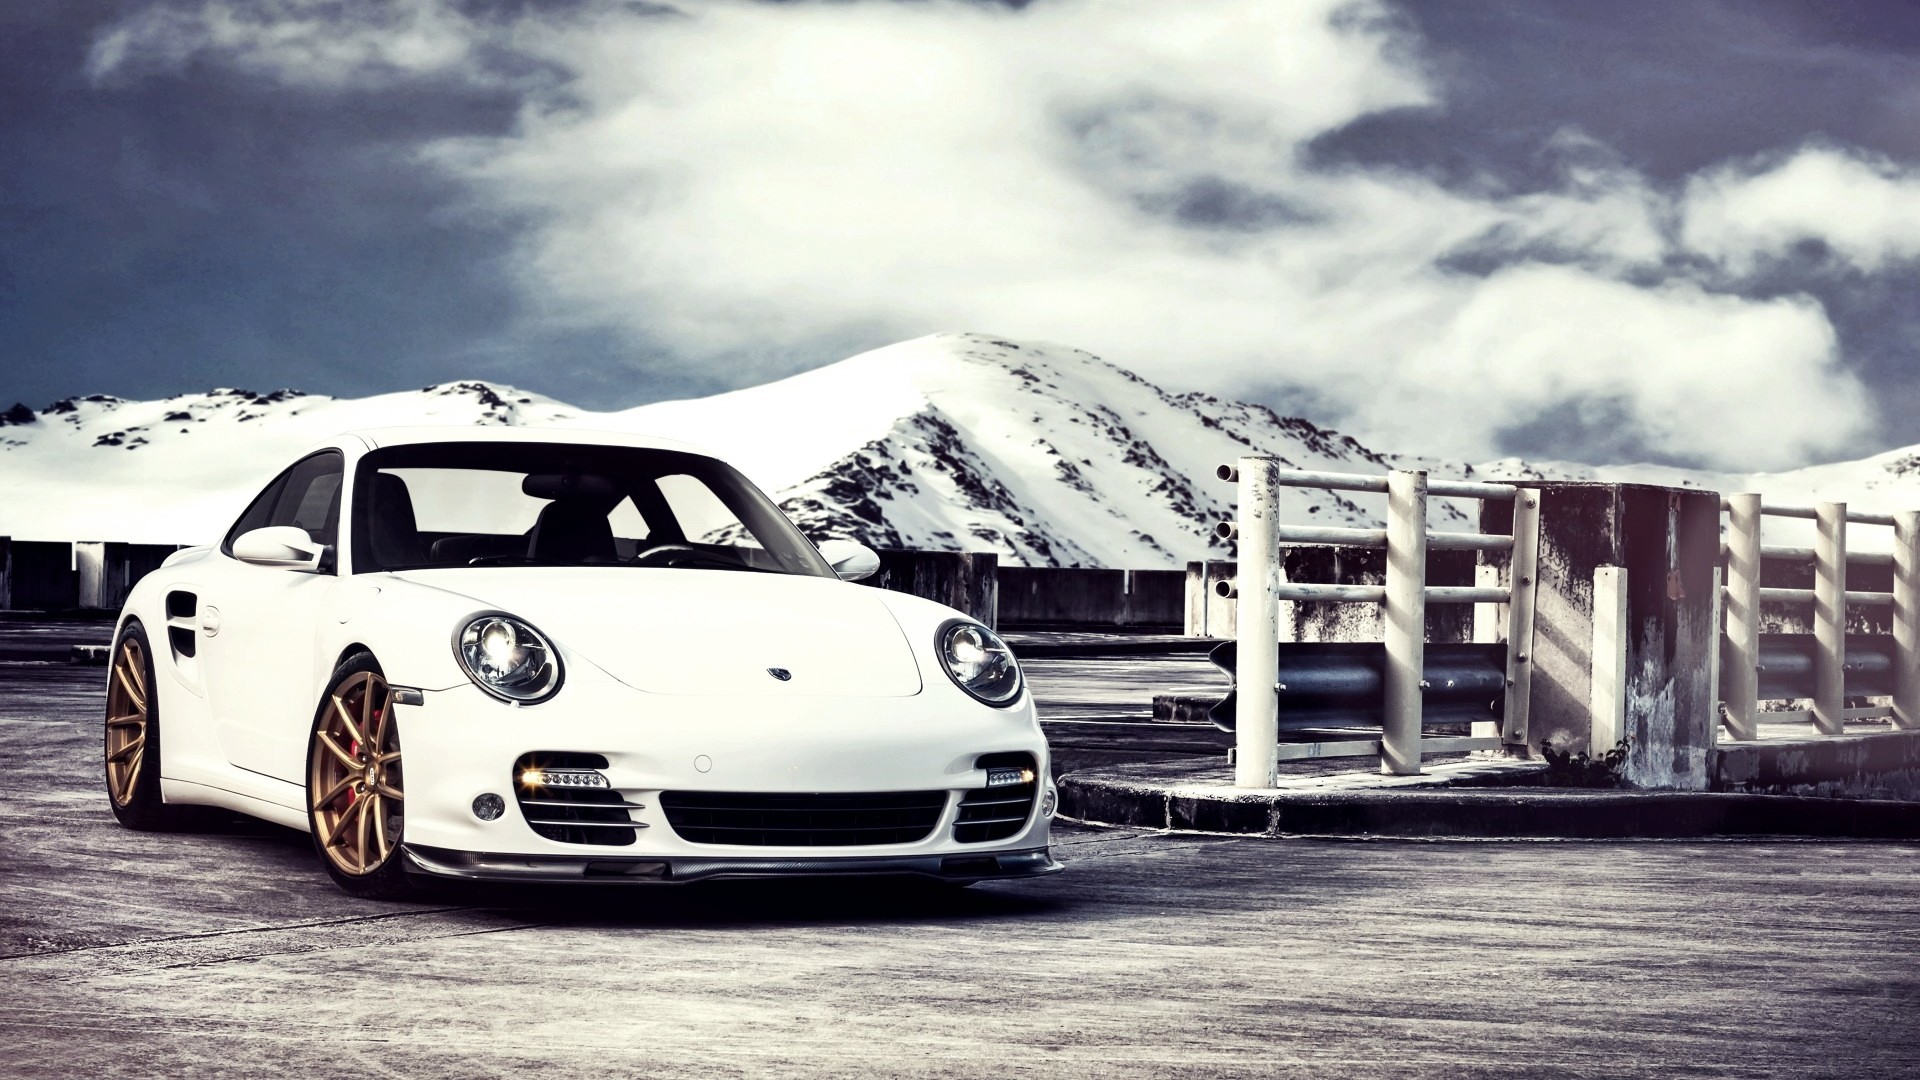 1920x1080 Porsche 911 Turbo Car HD Desktop Wallpaper